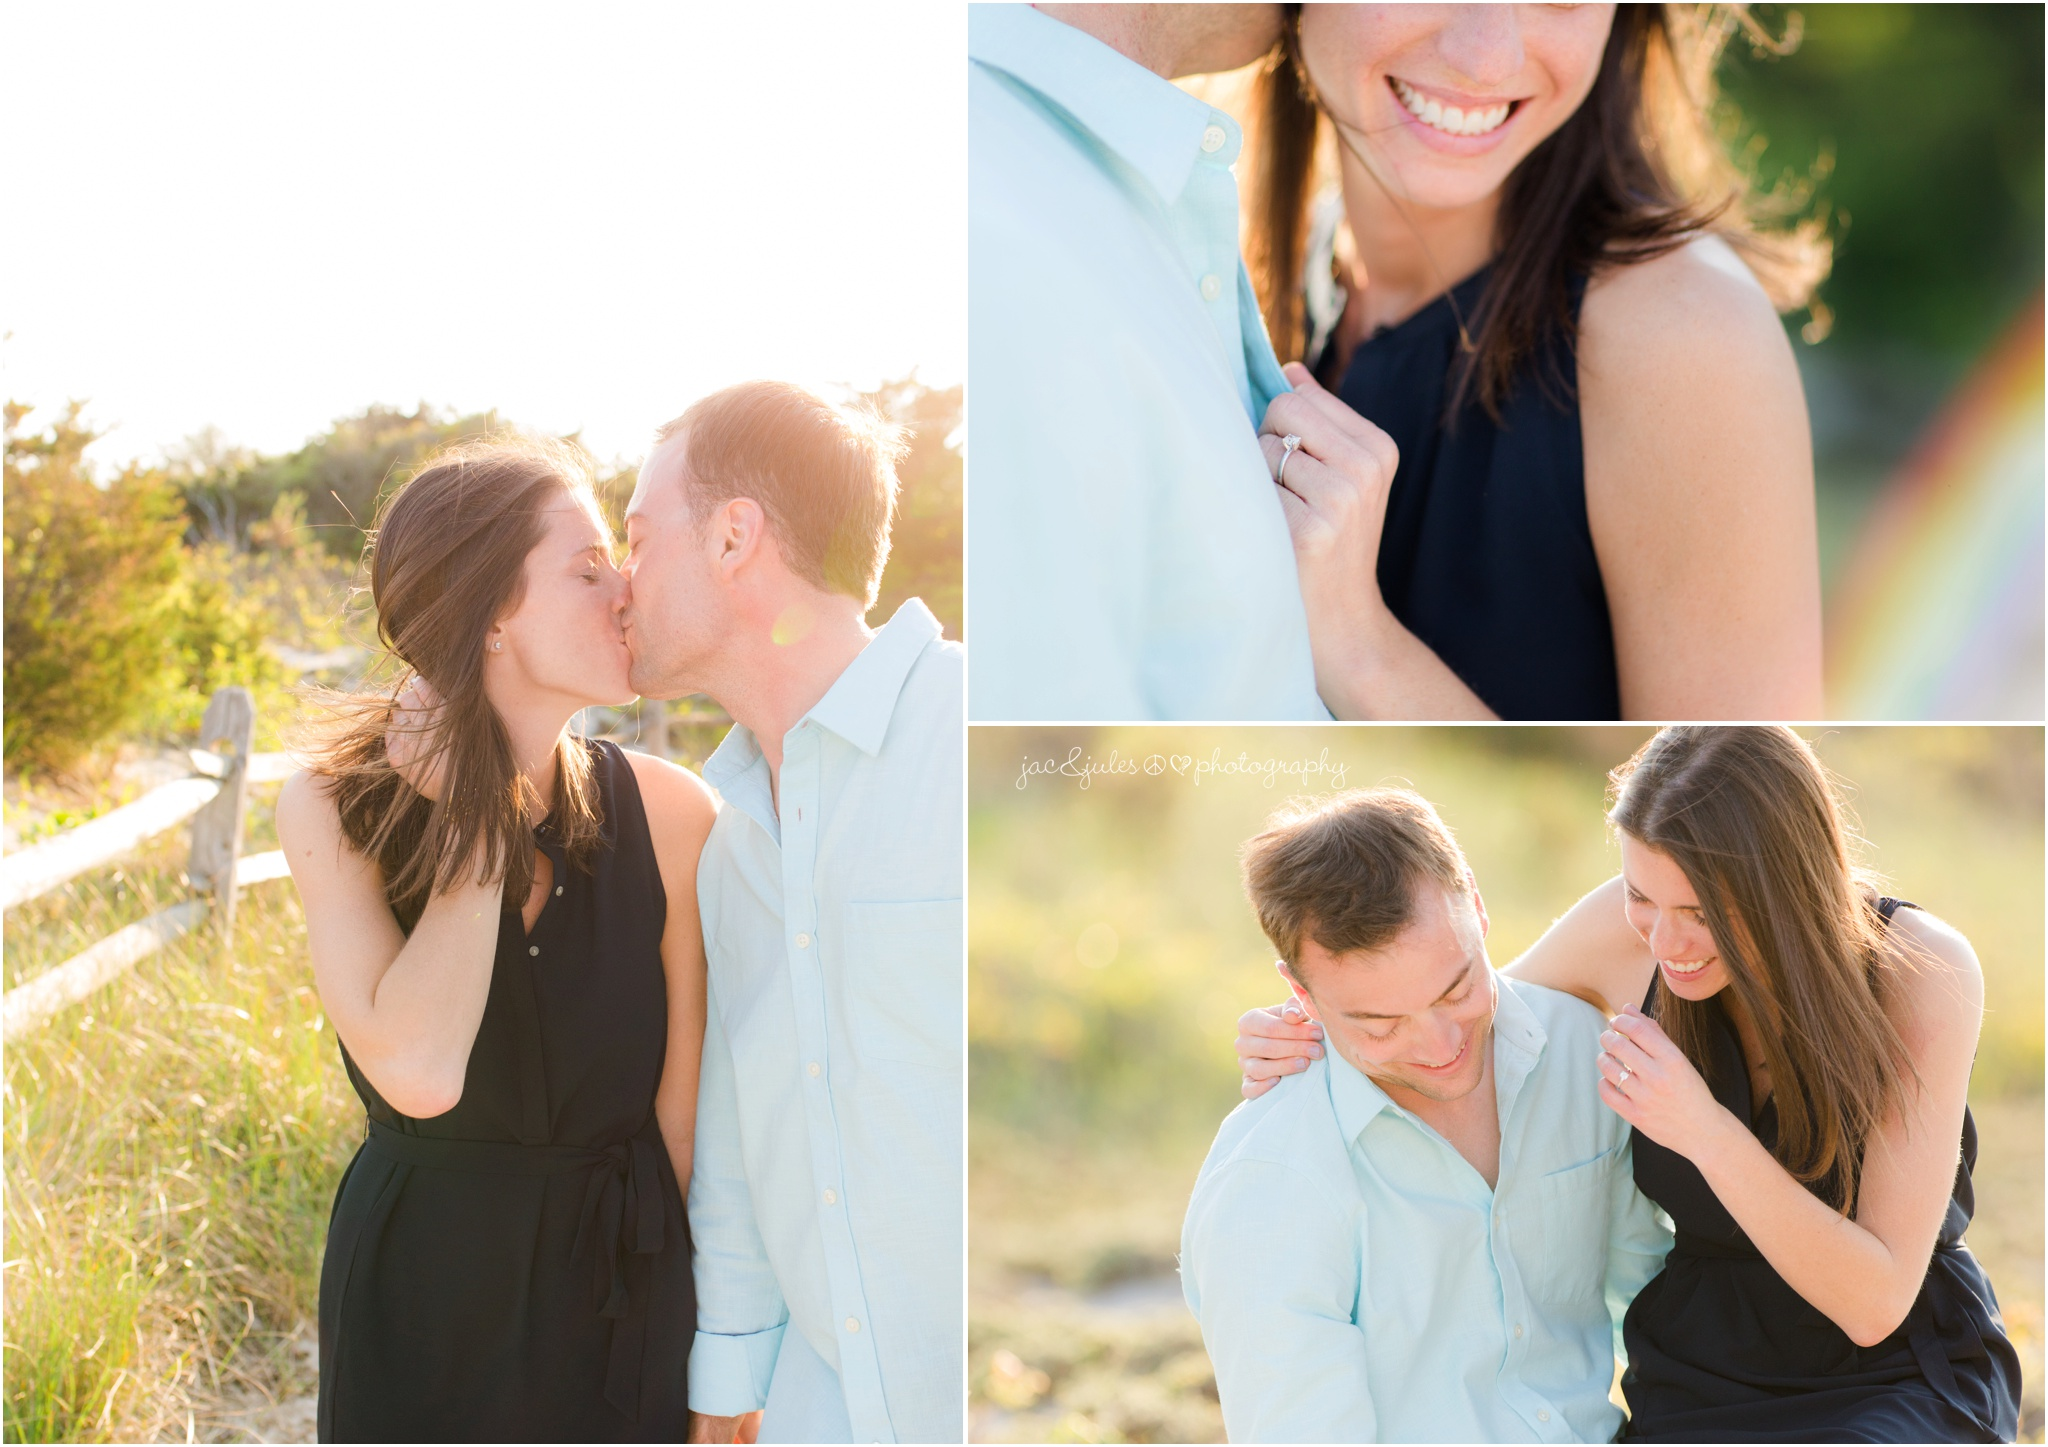 engagement photos at Island Beach State Park in Seaside Park, NJ.